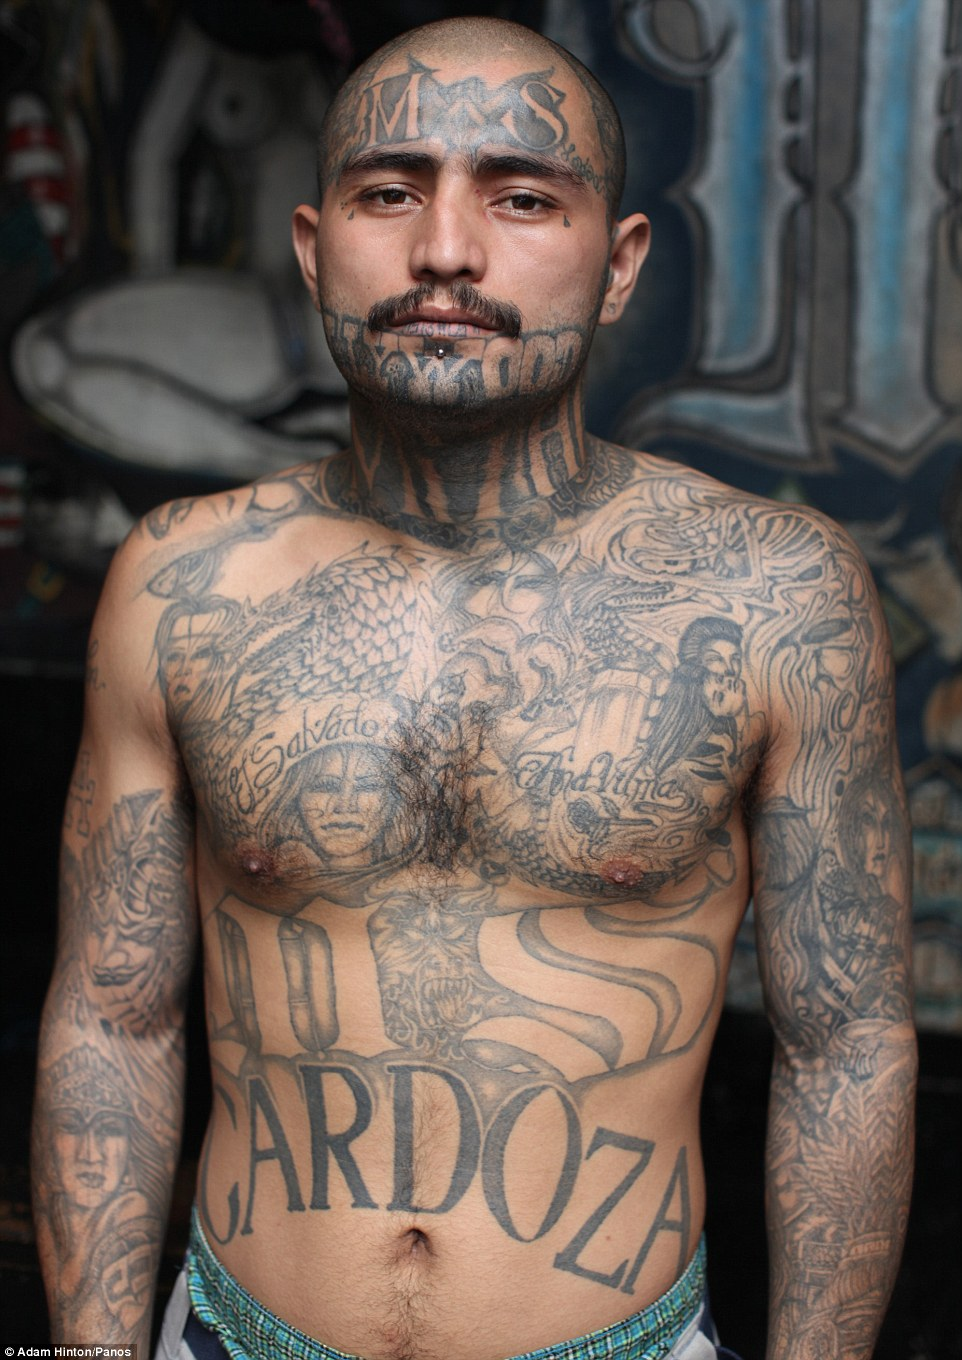 MS-13 Adam Hinton12